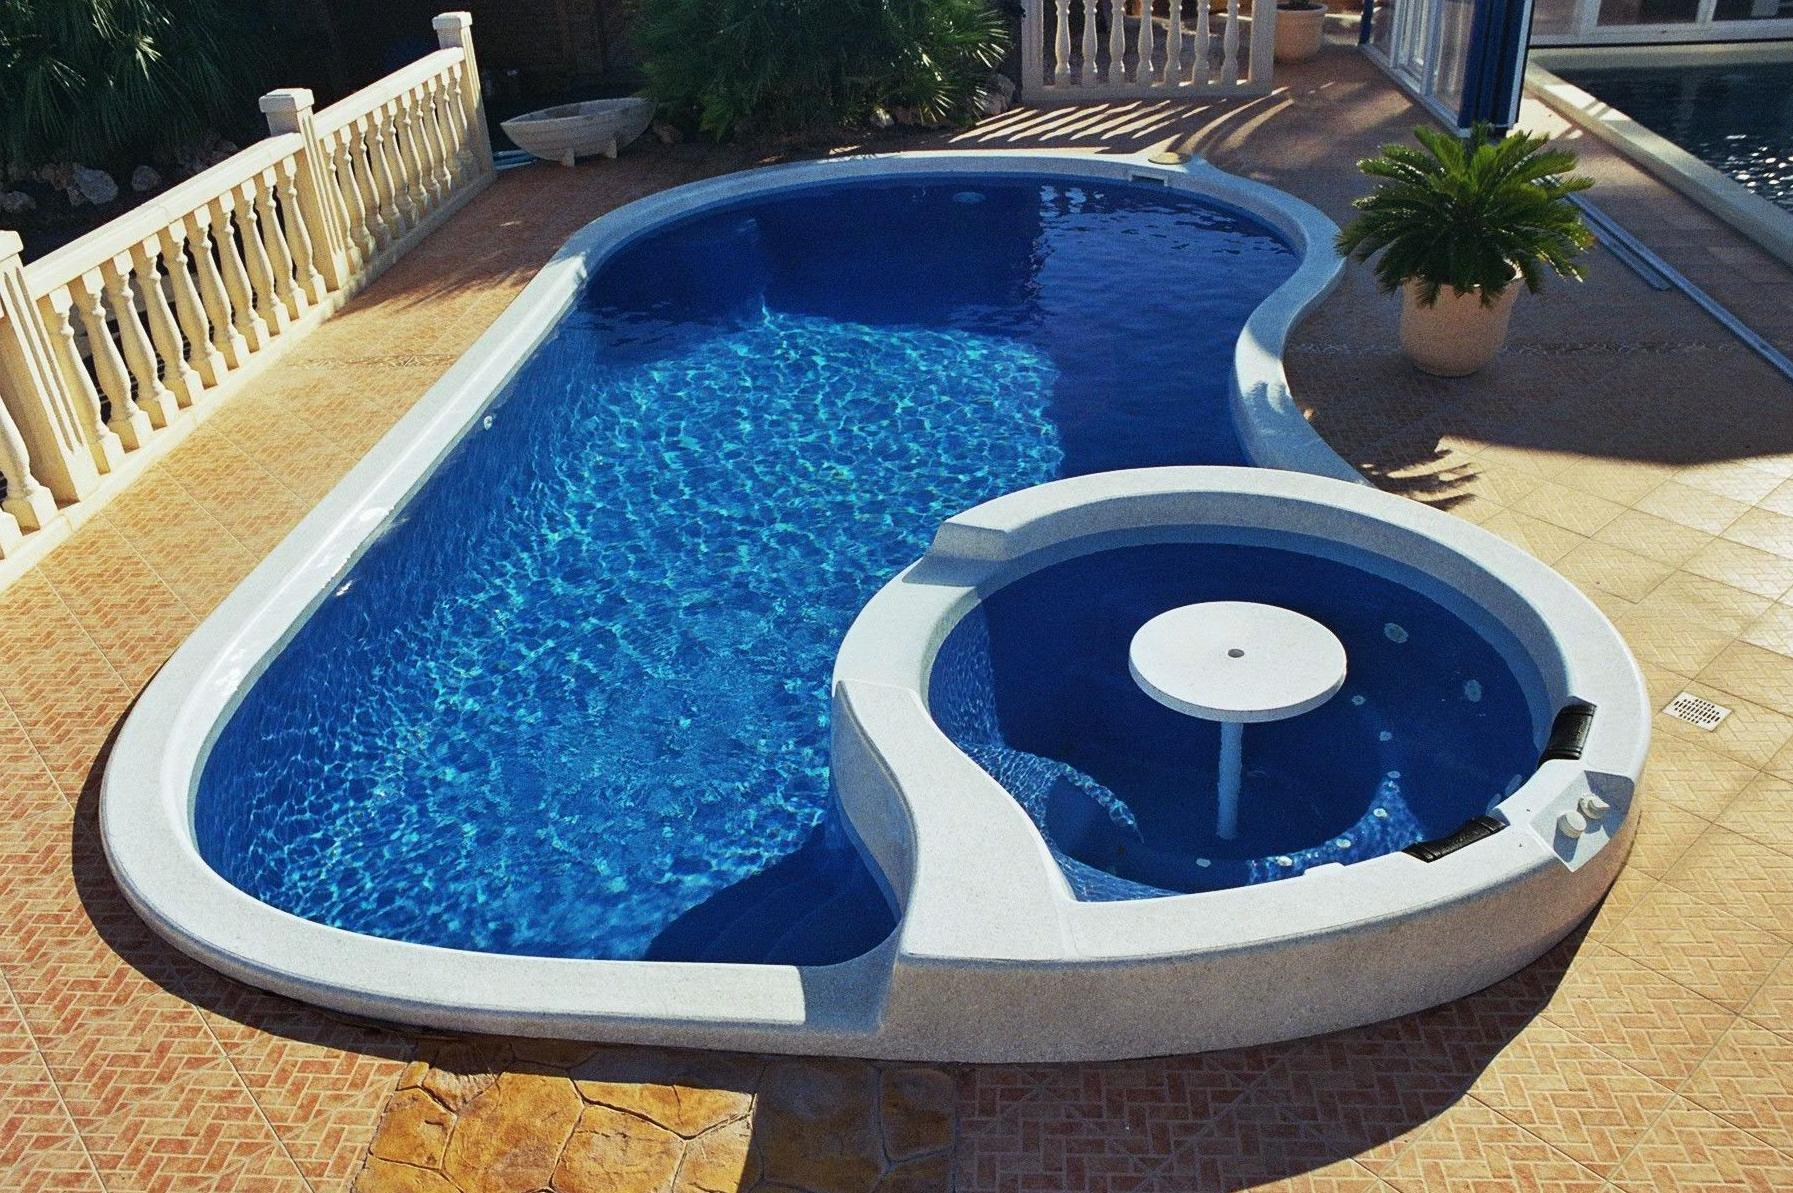 Piscinas freedom pool piscinas y accesorios de ardigral for Piscinas para enterrar precios